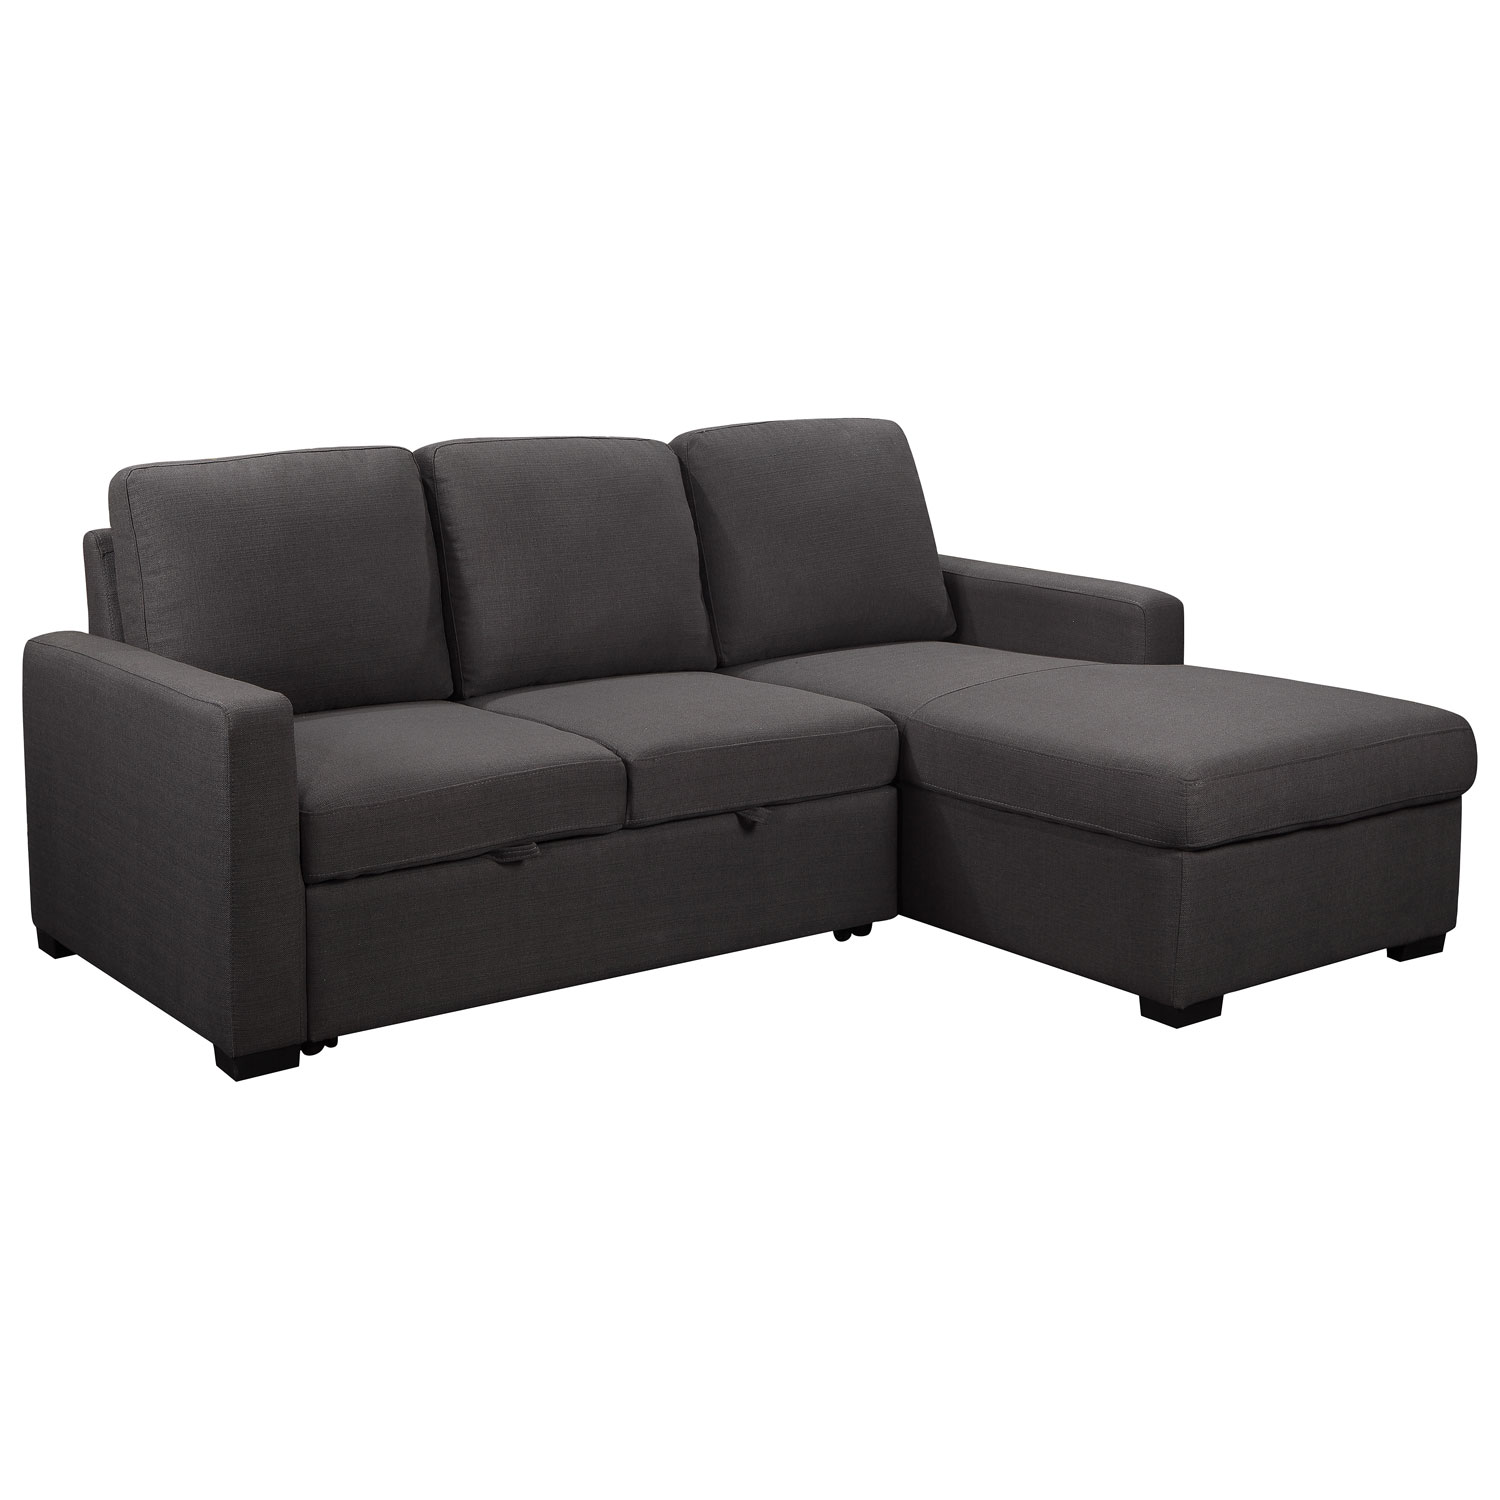 Relax Sofa Braun Living Room Furniture Best Buy Canada